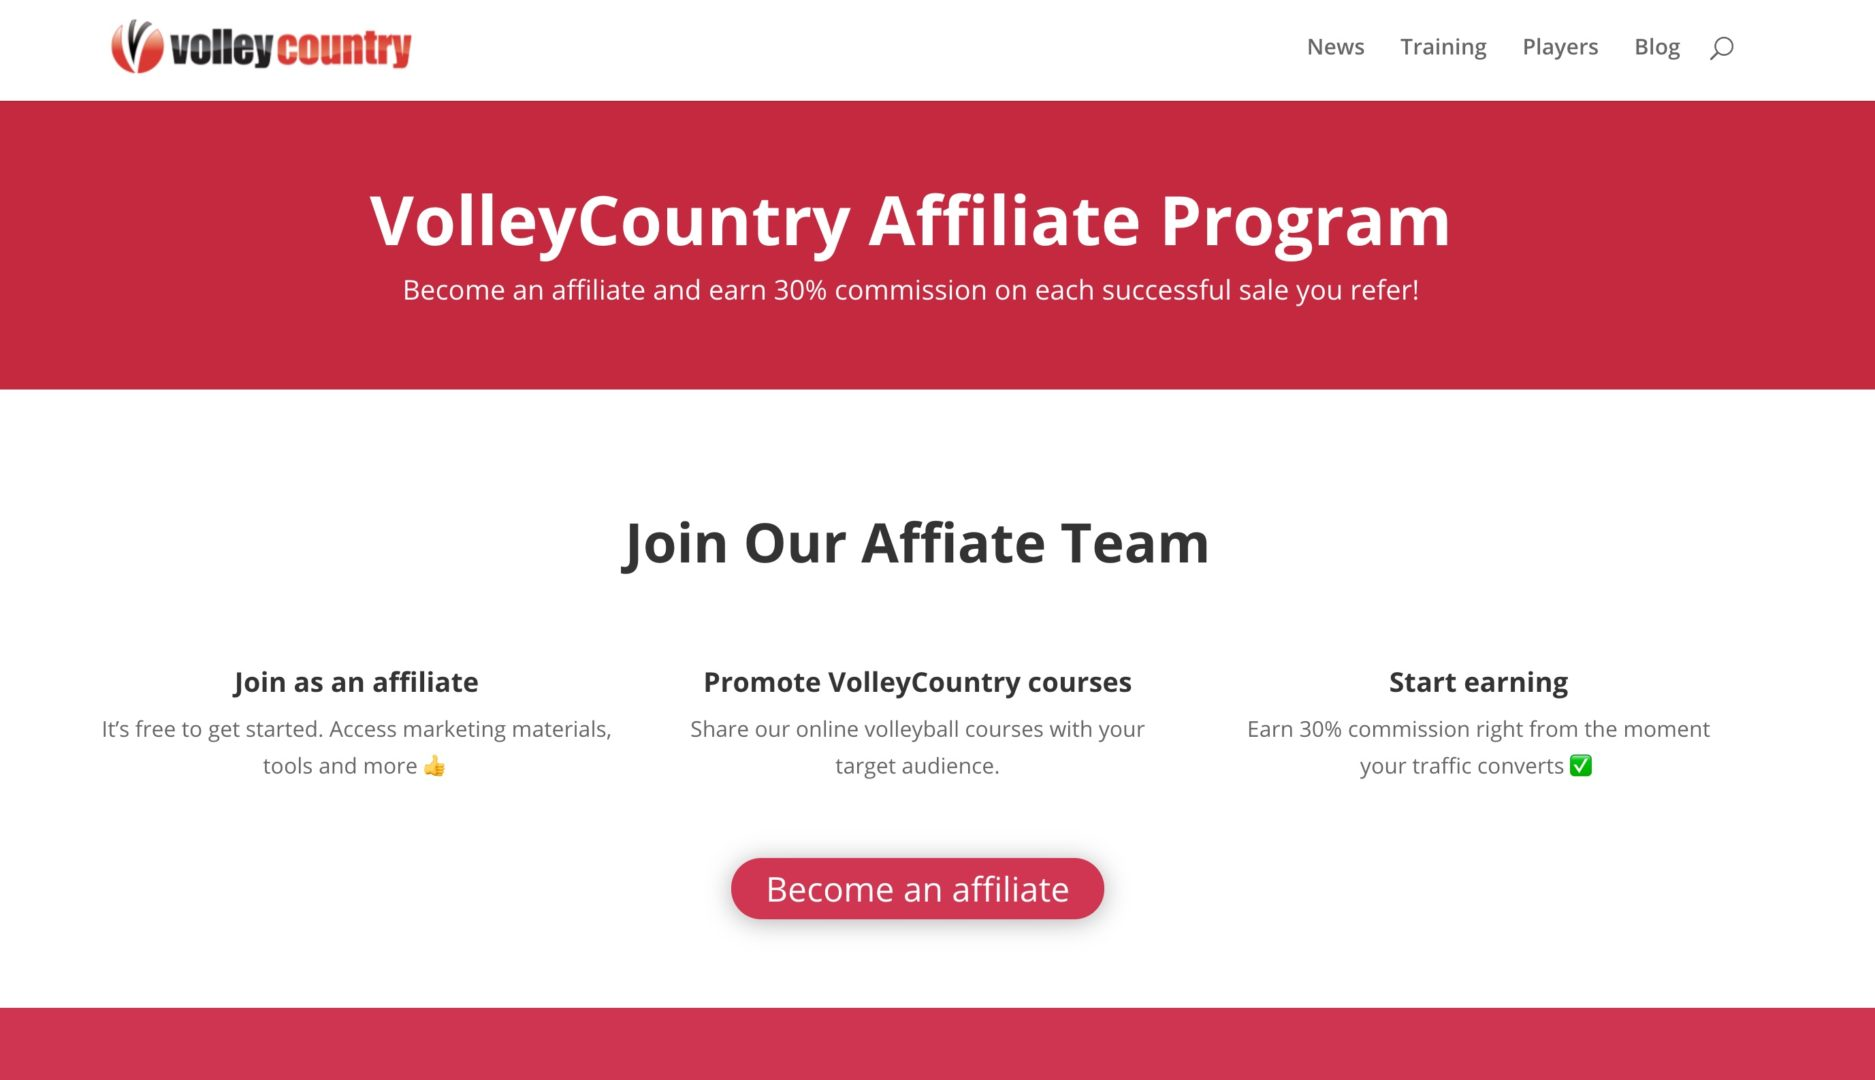 volleycountry affiliate program